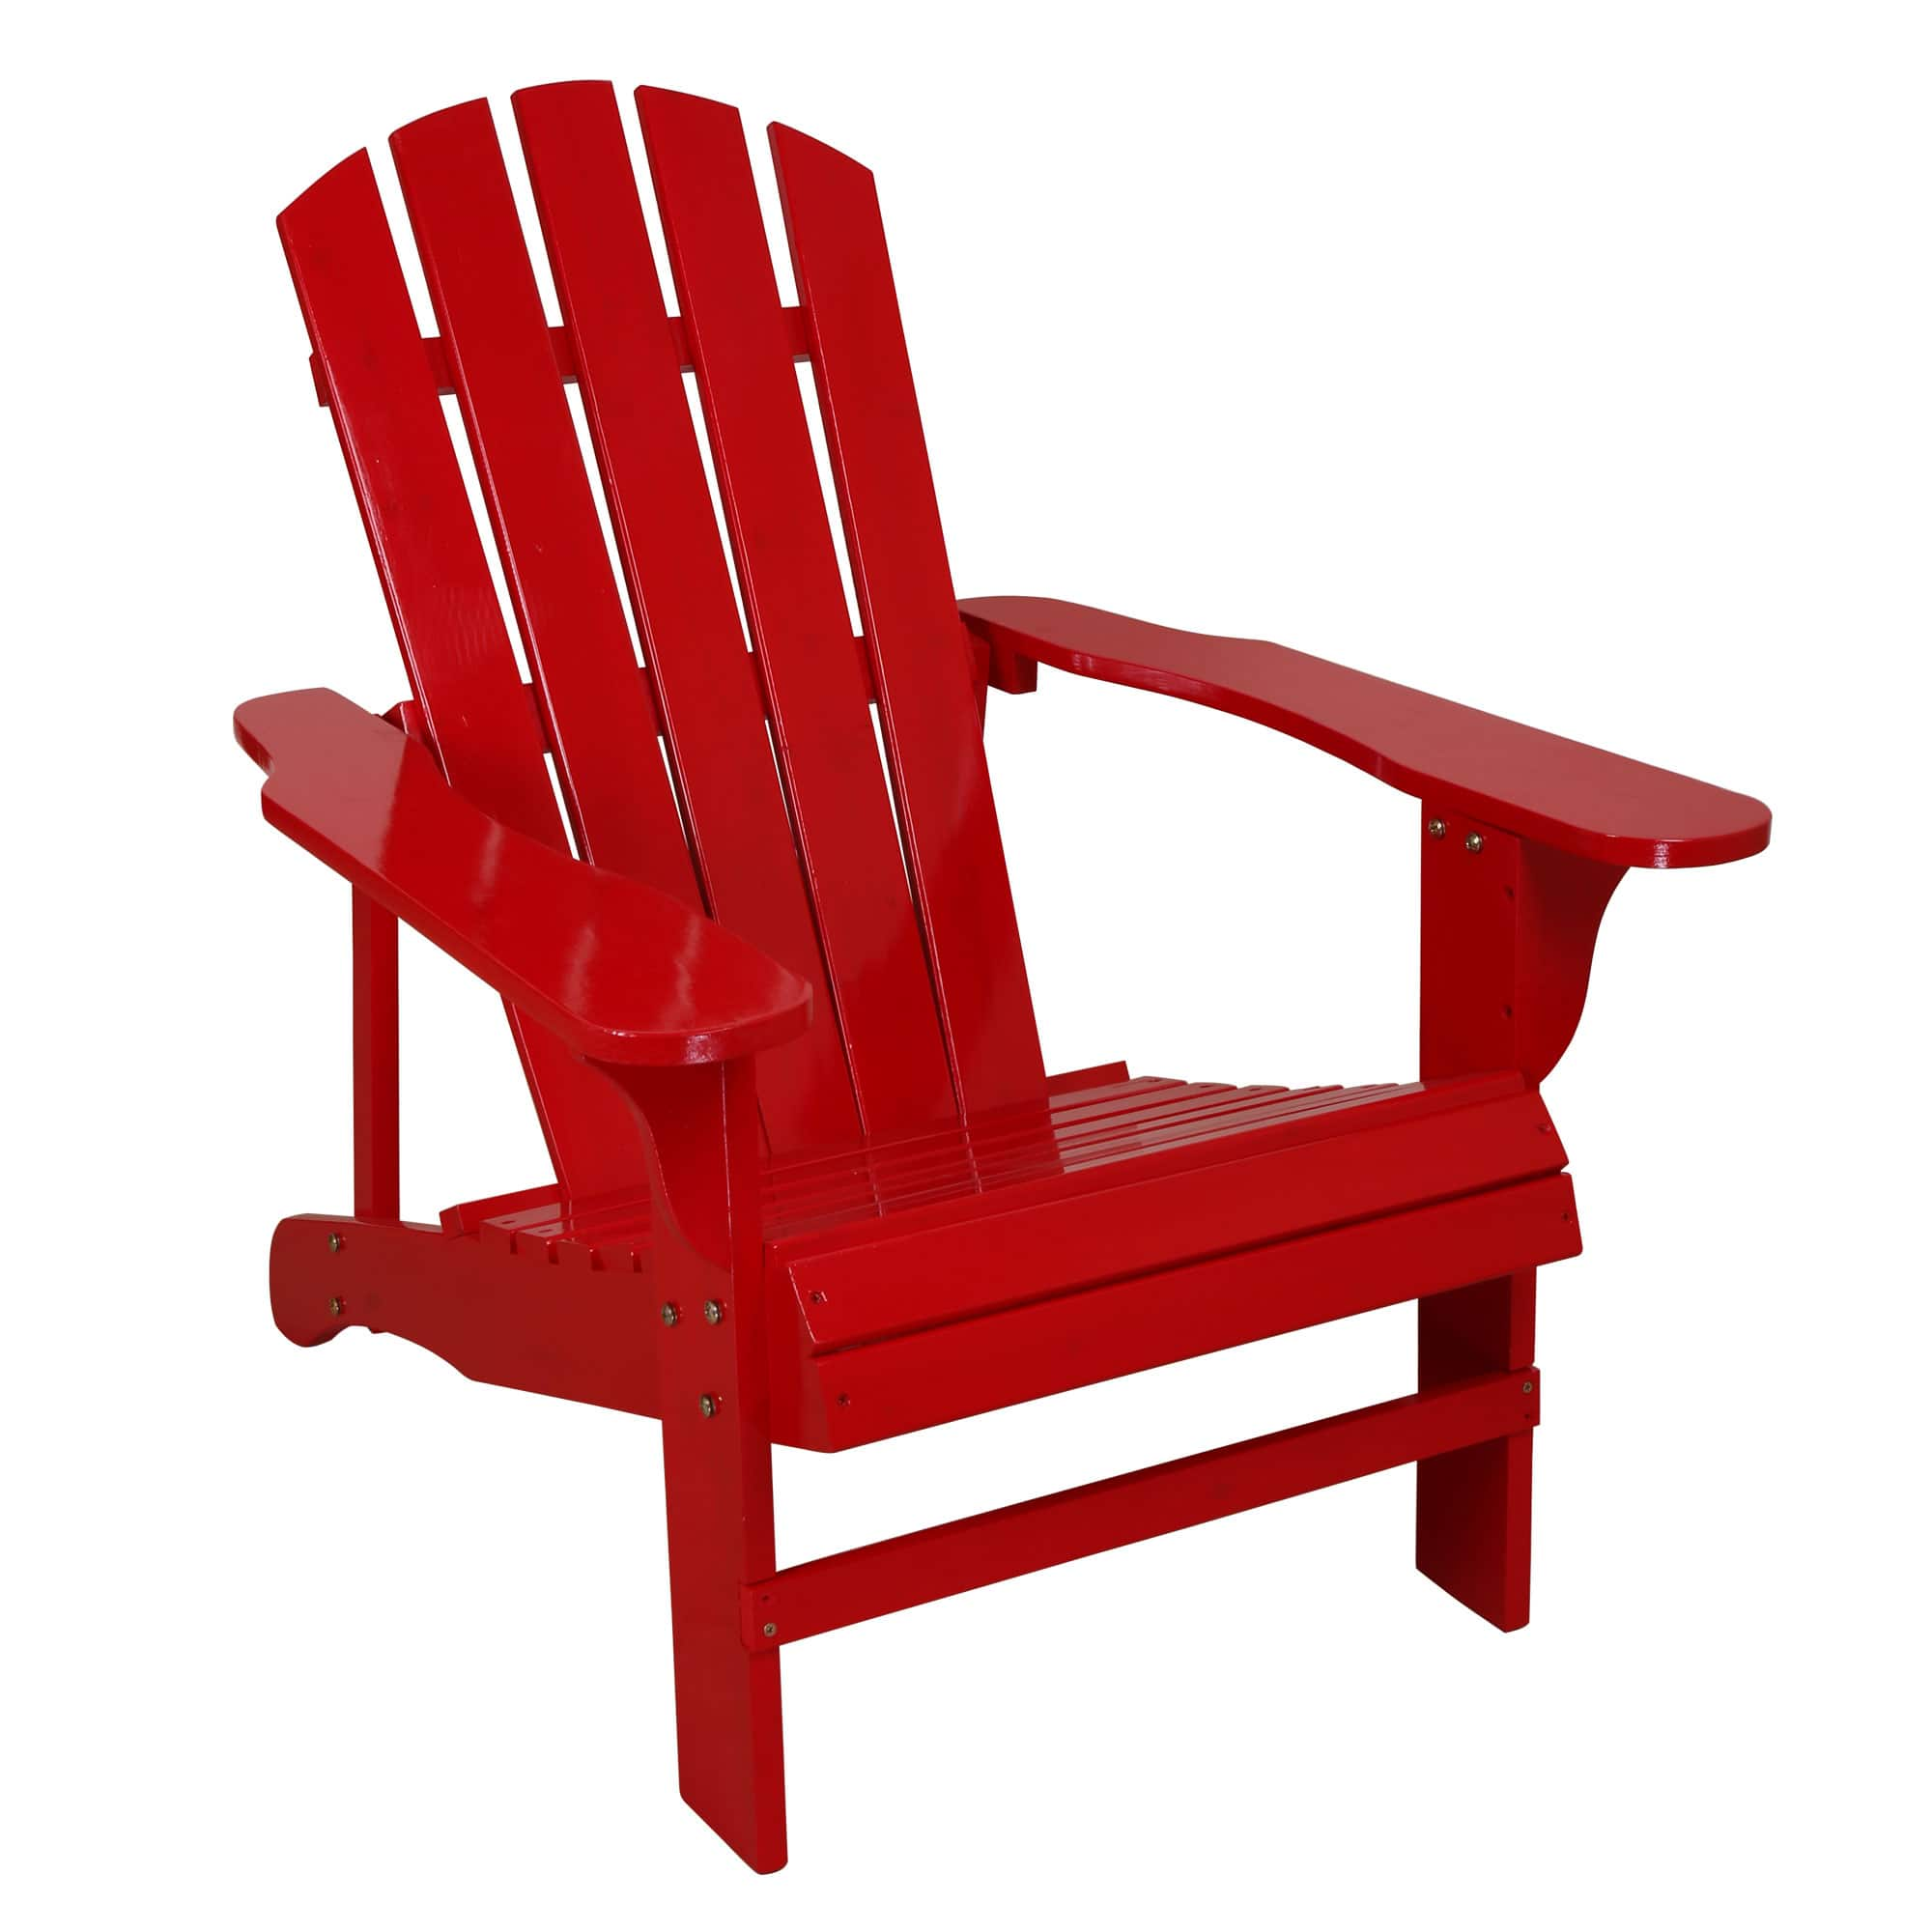 Amazon Sale Adirondack Chair Red for 50% OFF/ After code price 48 & Free Shipping $48